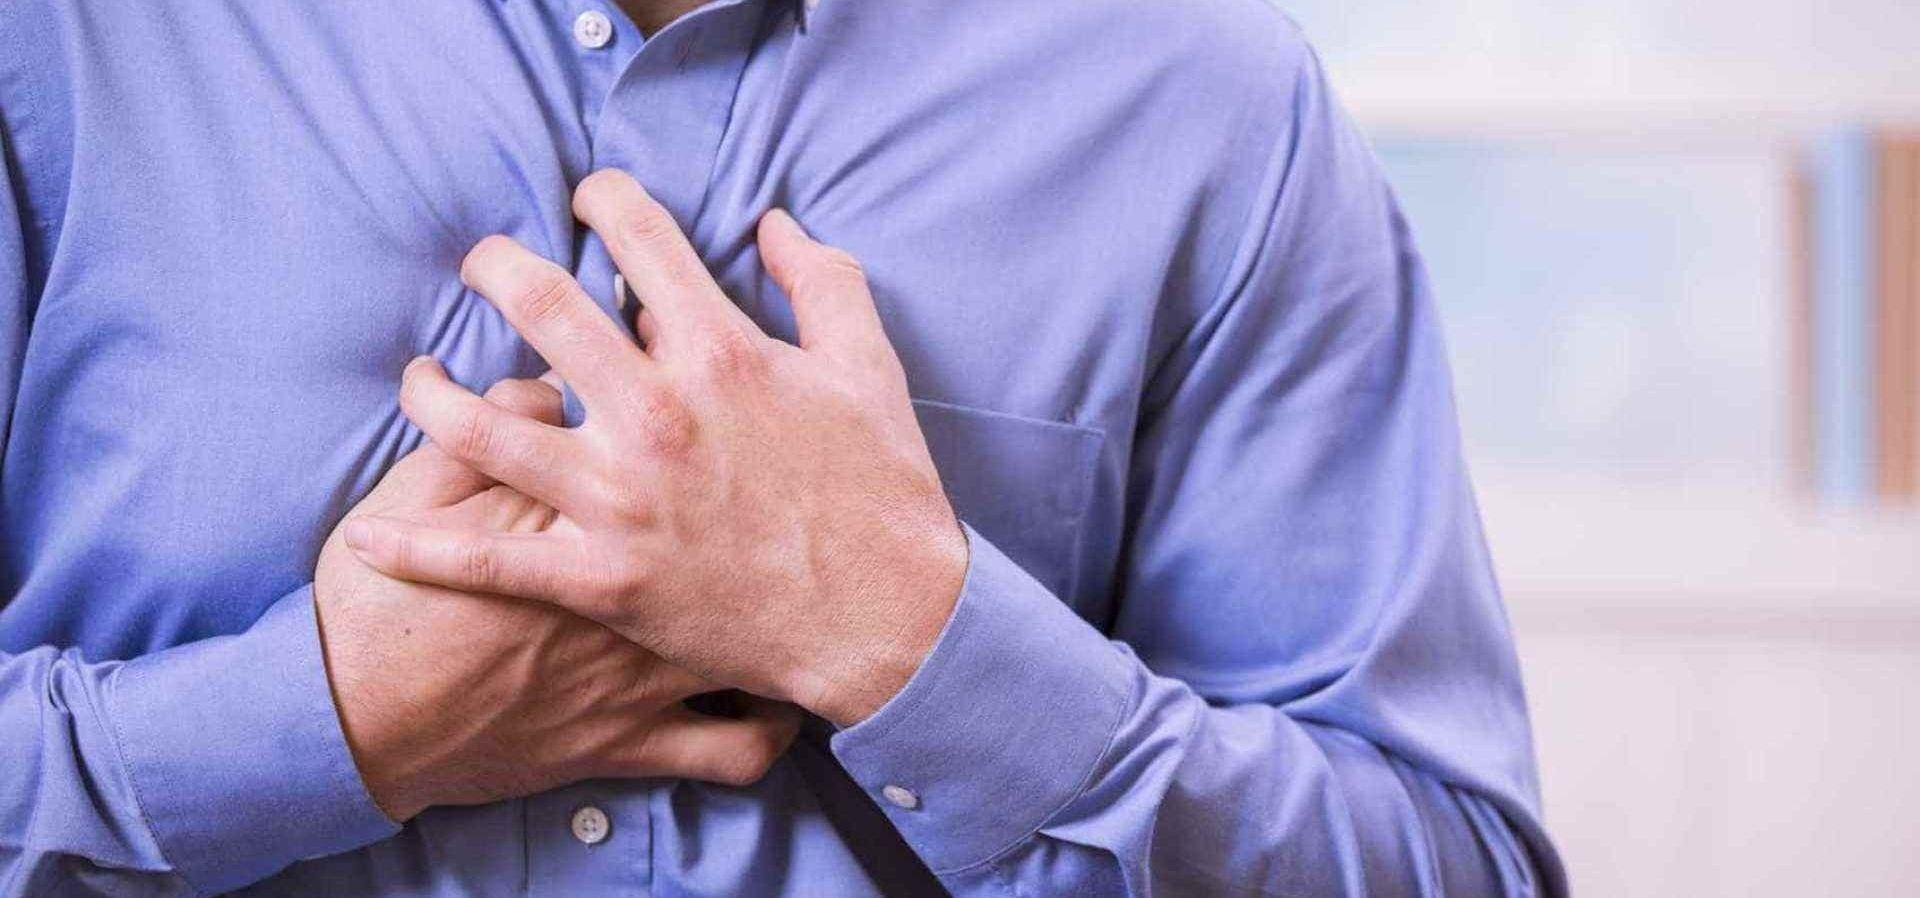 30-year-olds Are Getting Heart Attacks, Here